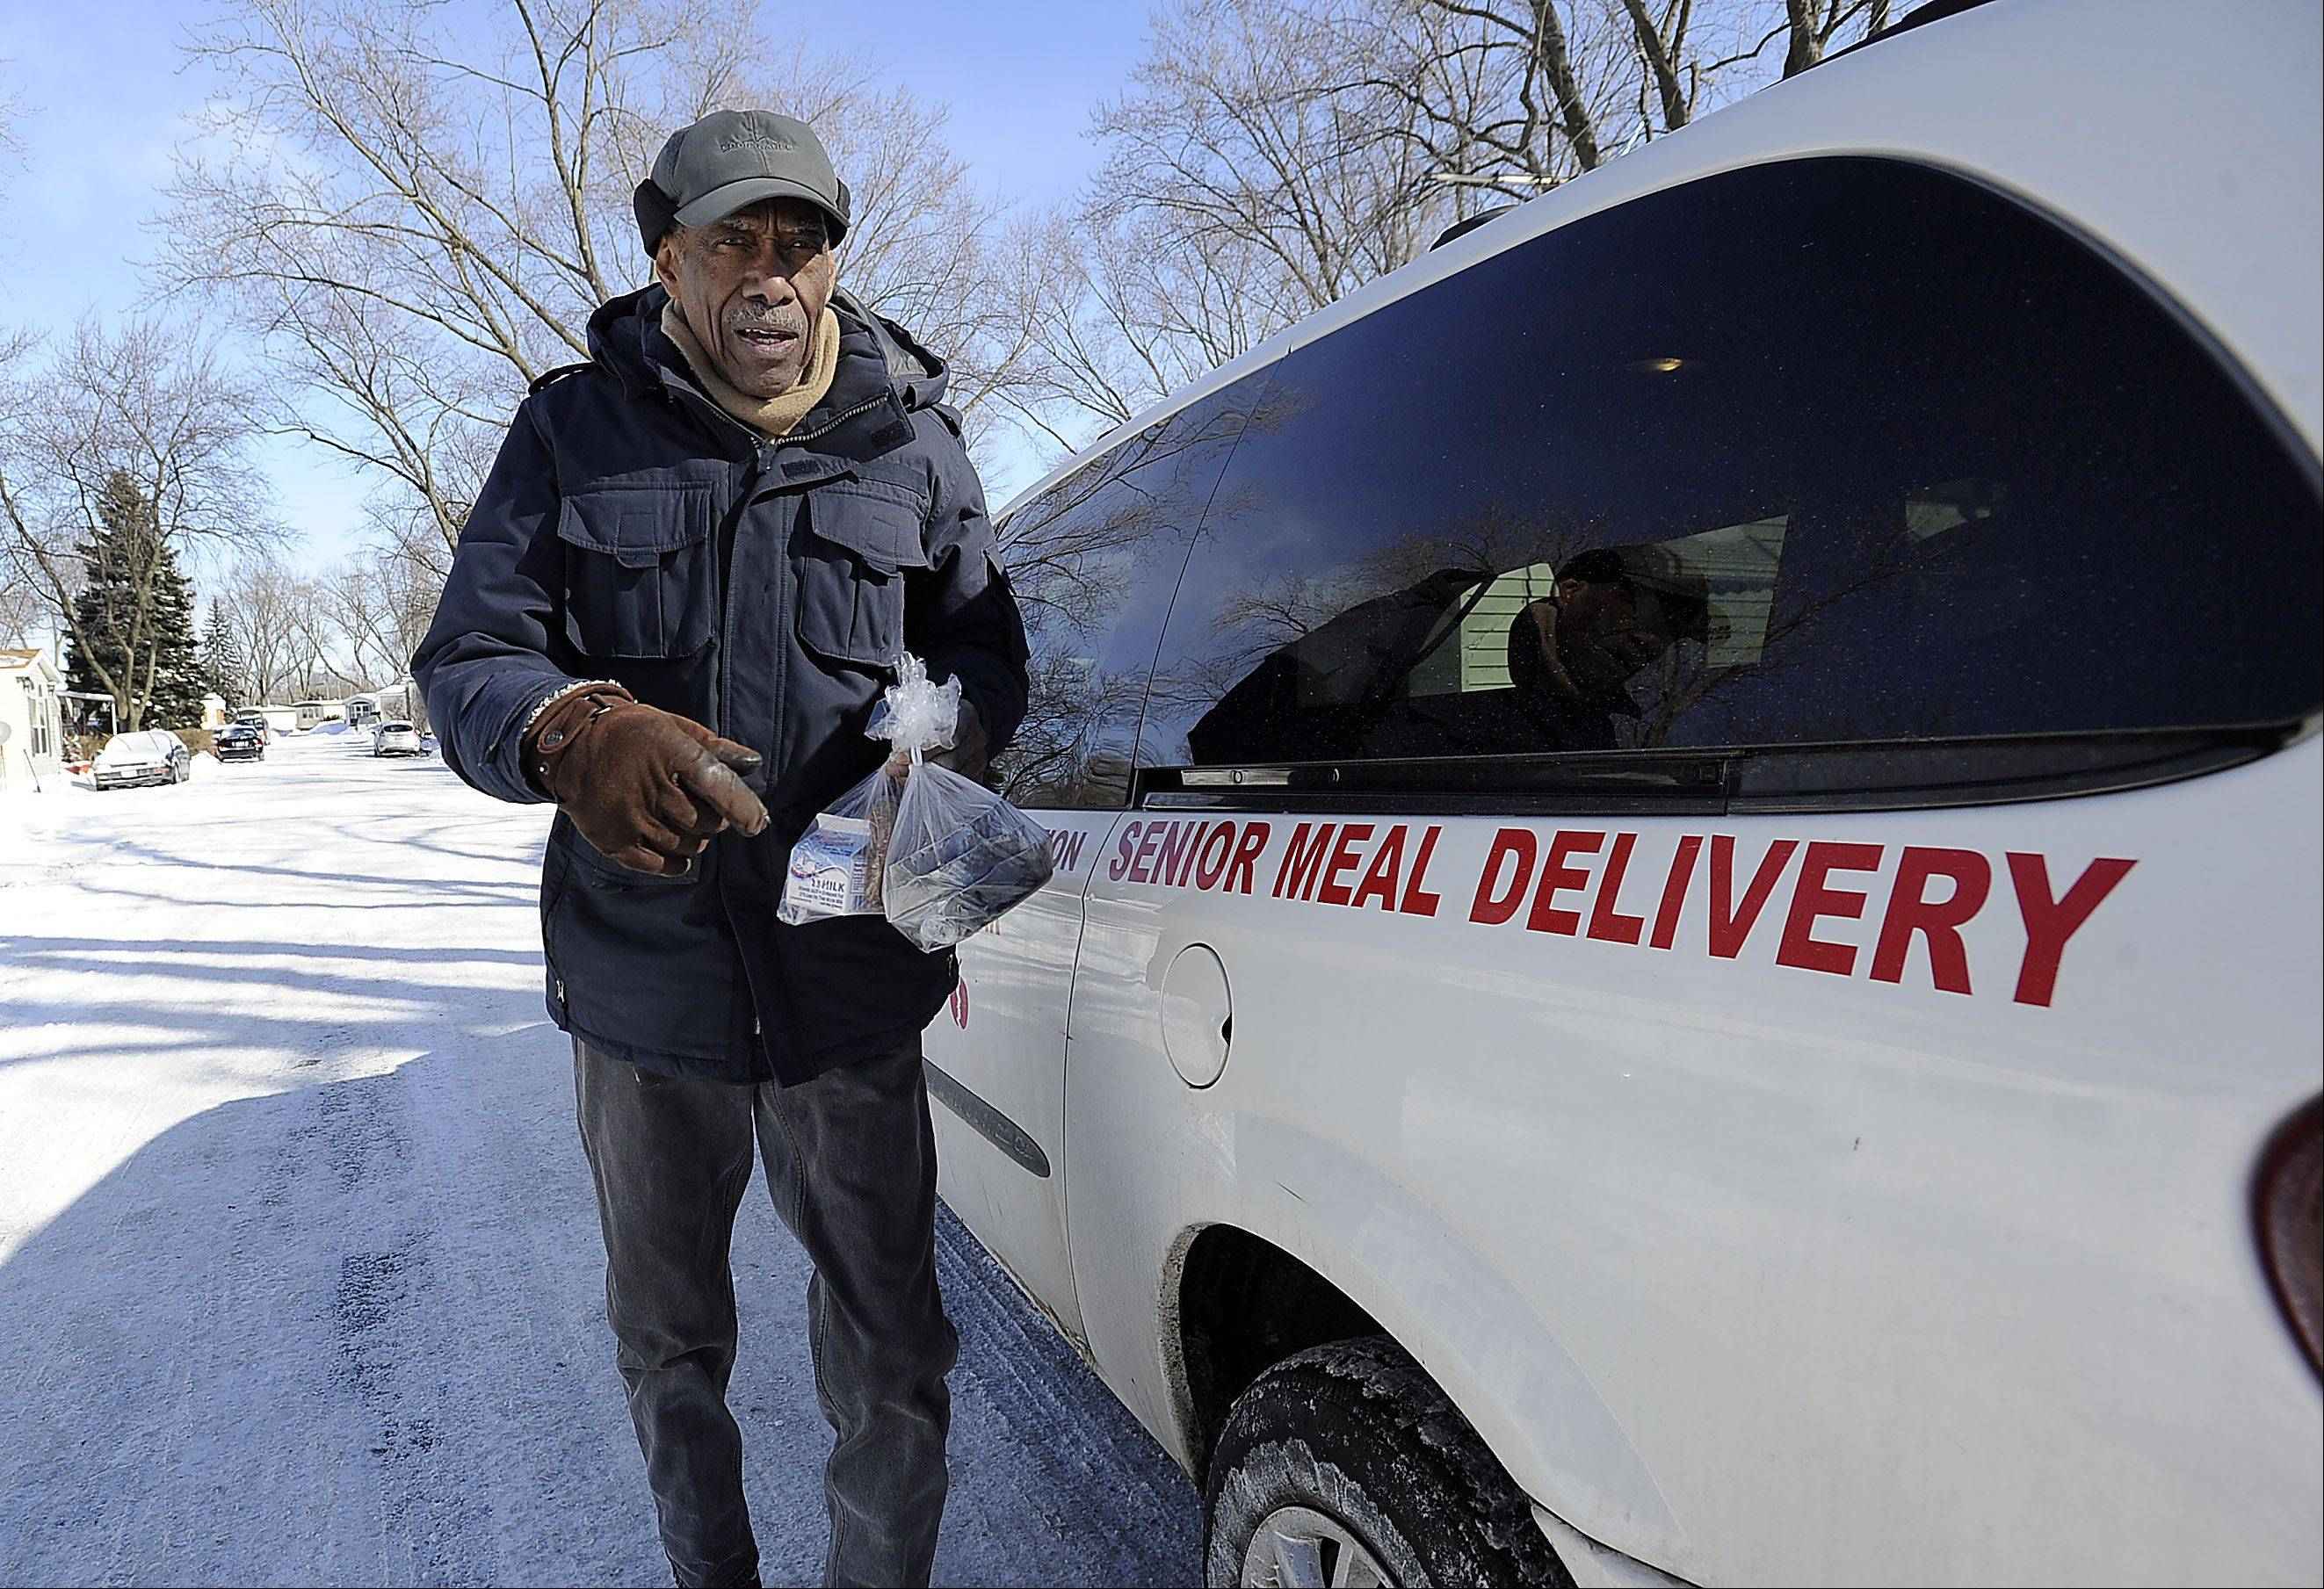 Des Plaines resident and Meals on Wheels driver Samuel Grimes, 88, delivers hot meals to needy people on his route five days a week, regardless of the conditions.